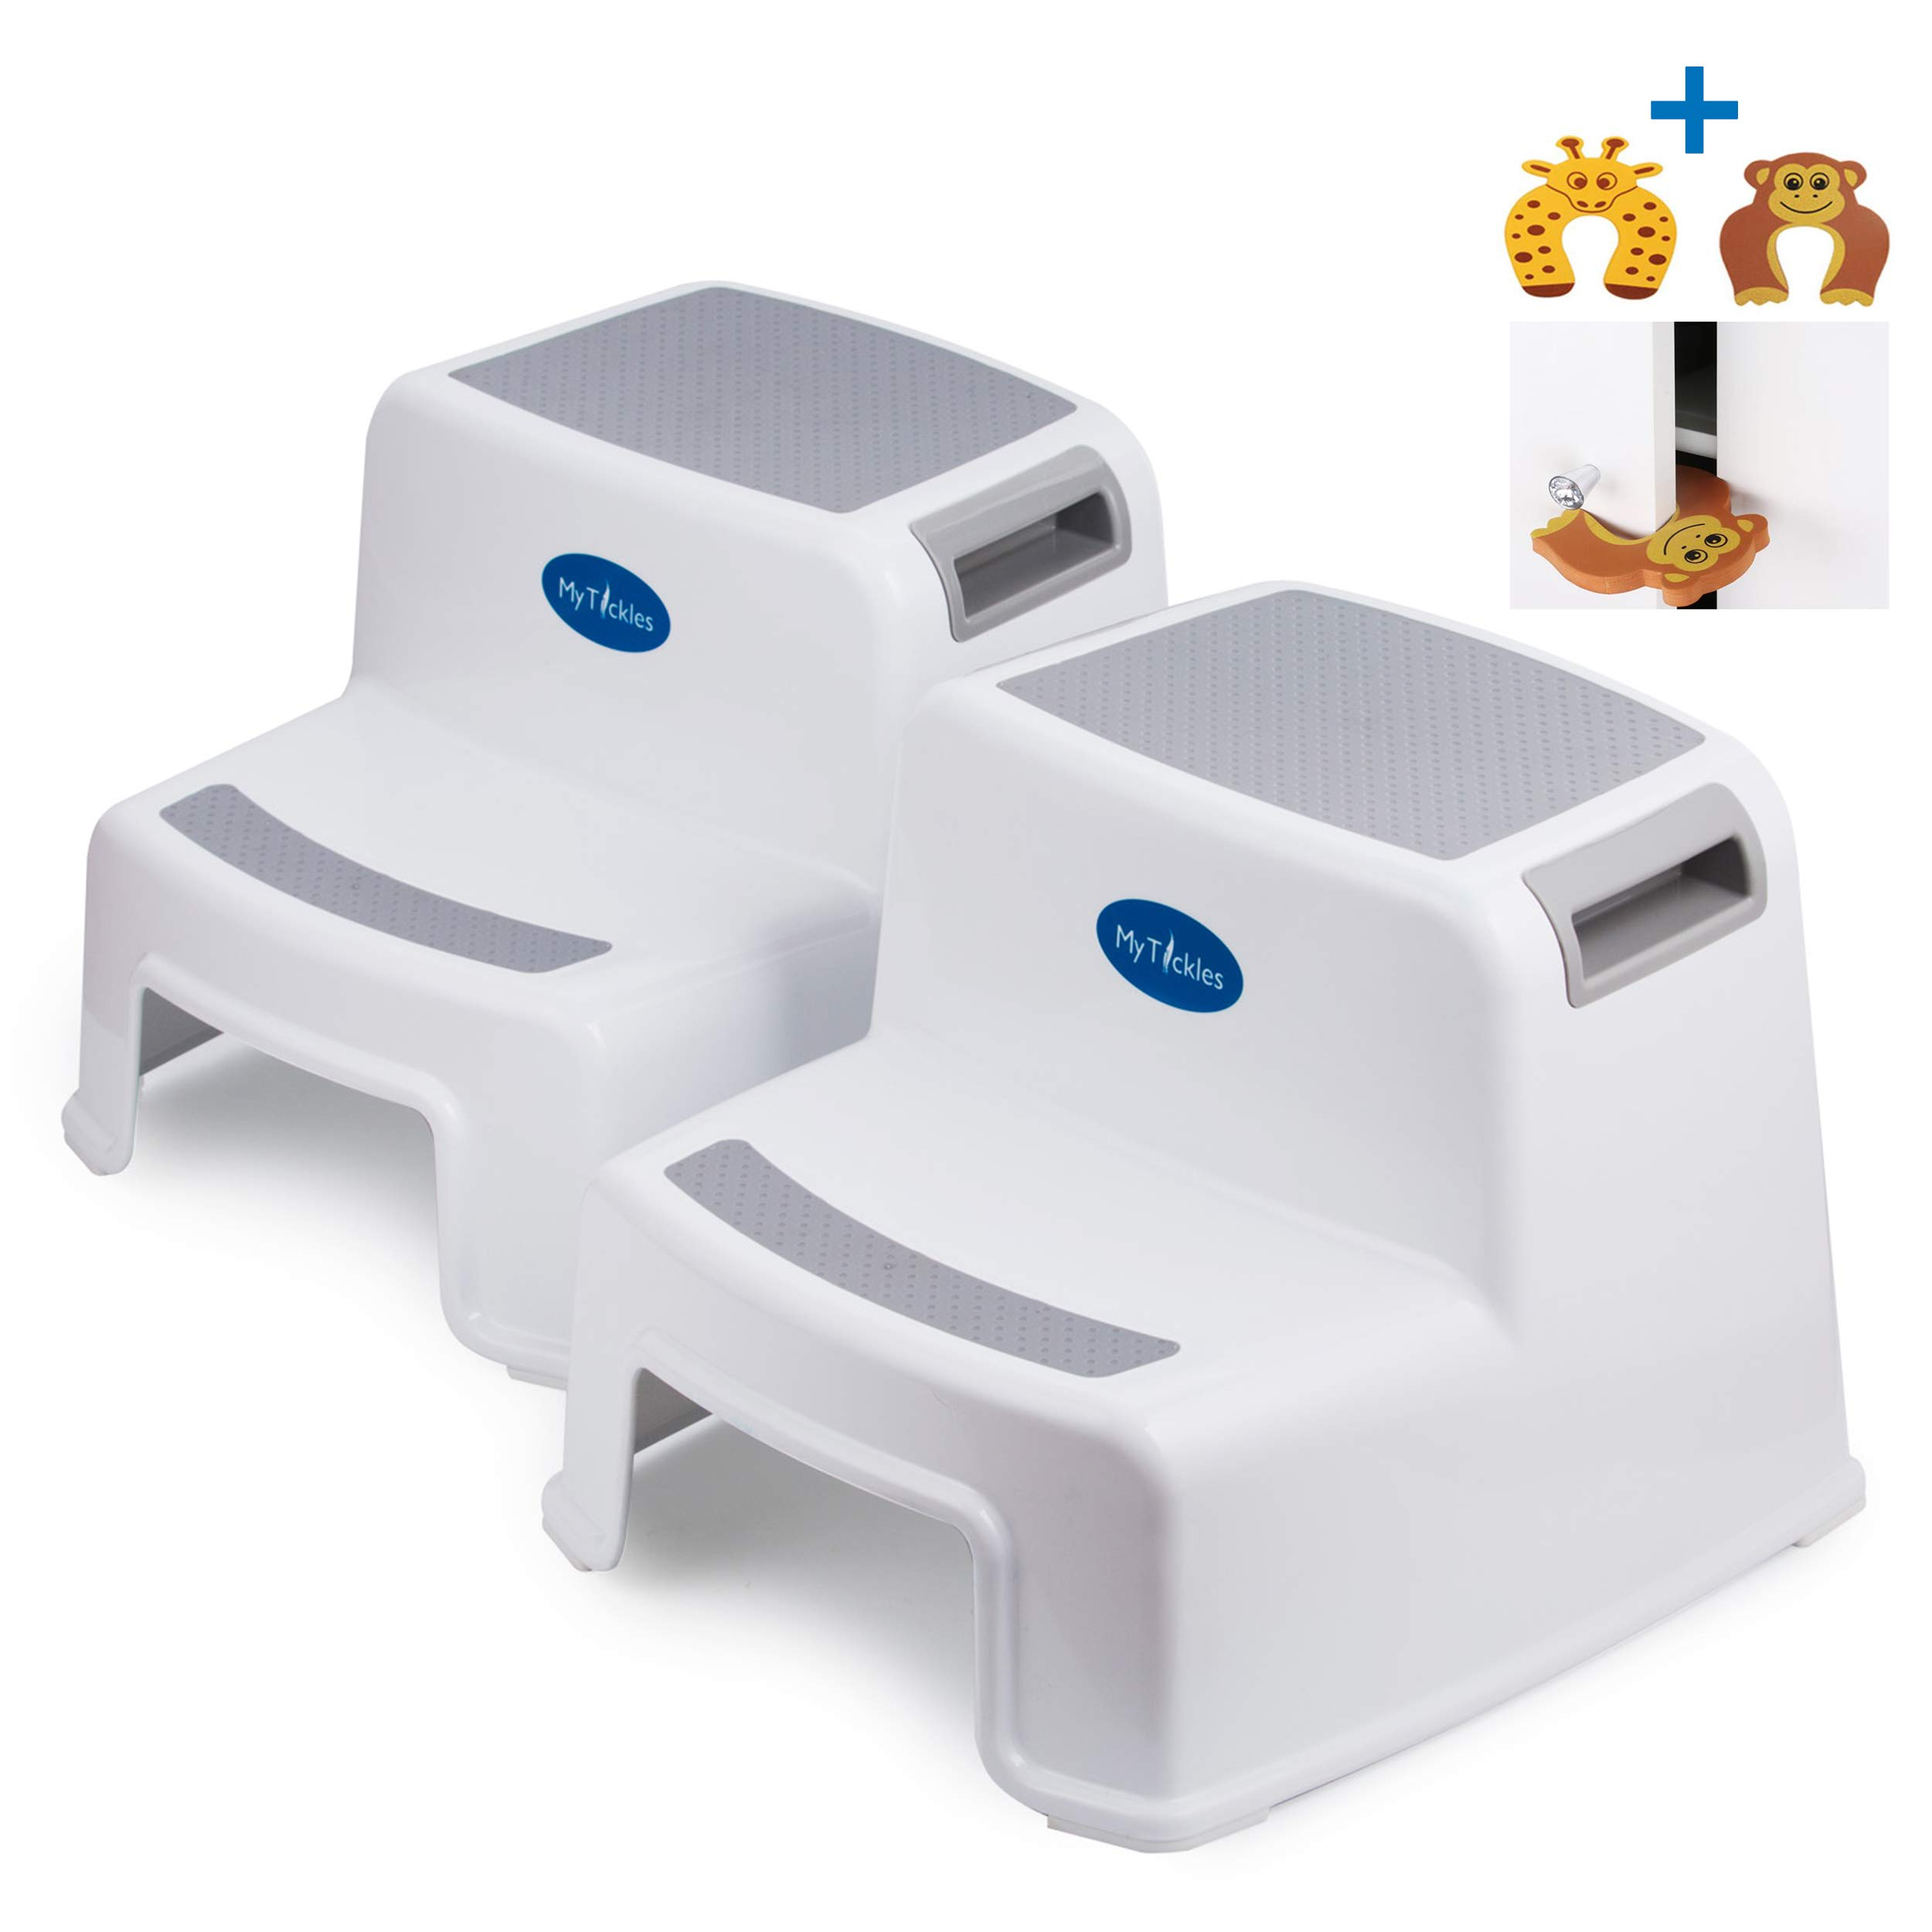 (2 Pack) 2 Step Stool for Kids with 2 Free Finger Pinch Guards! Perfect for The Bathroom and Kitchen, with Extra Thick Anti-Slip Rubber Feet. by MyTickles